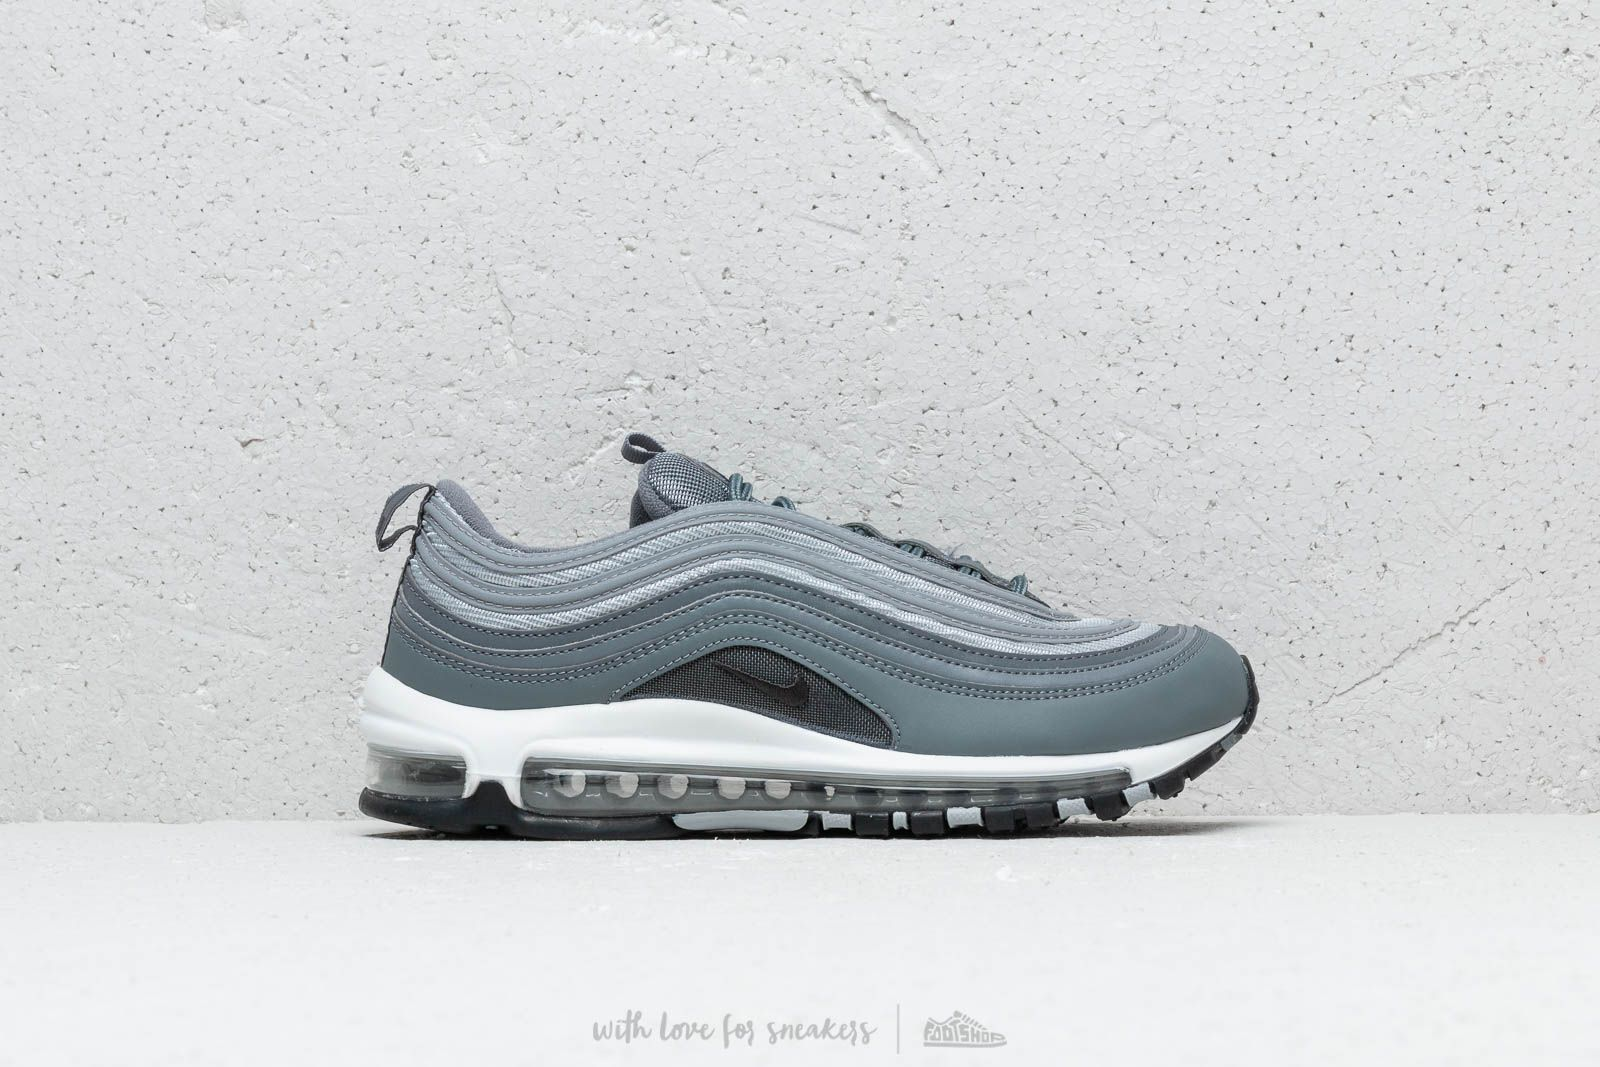 hot sale online 865d6 b111a Nike Air Max 97 Essential Cool Grey  Wolf Grey-Anthracite-White at a